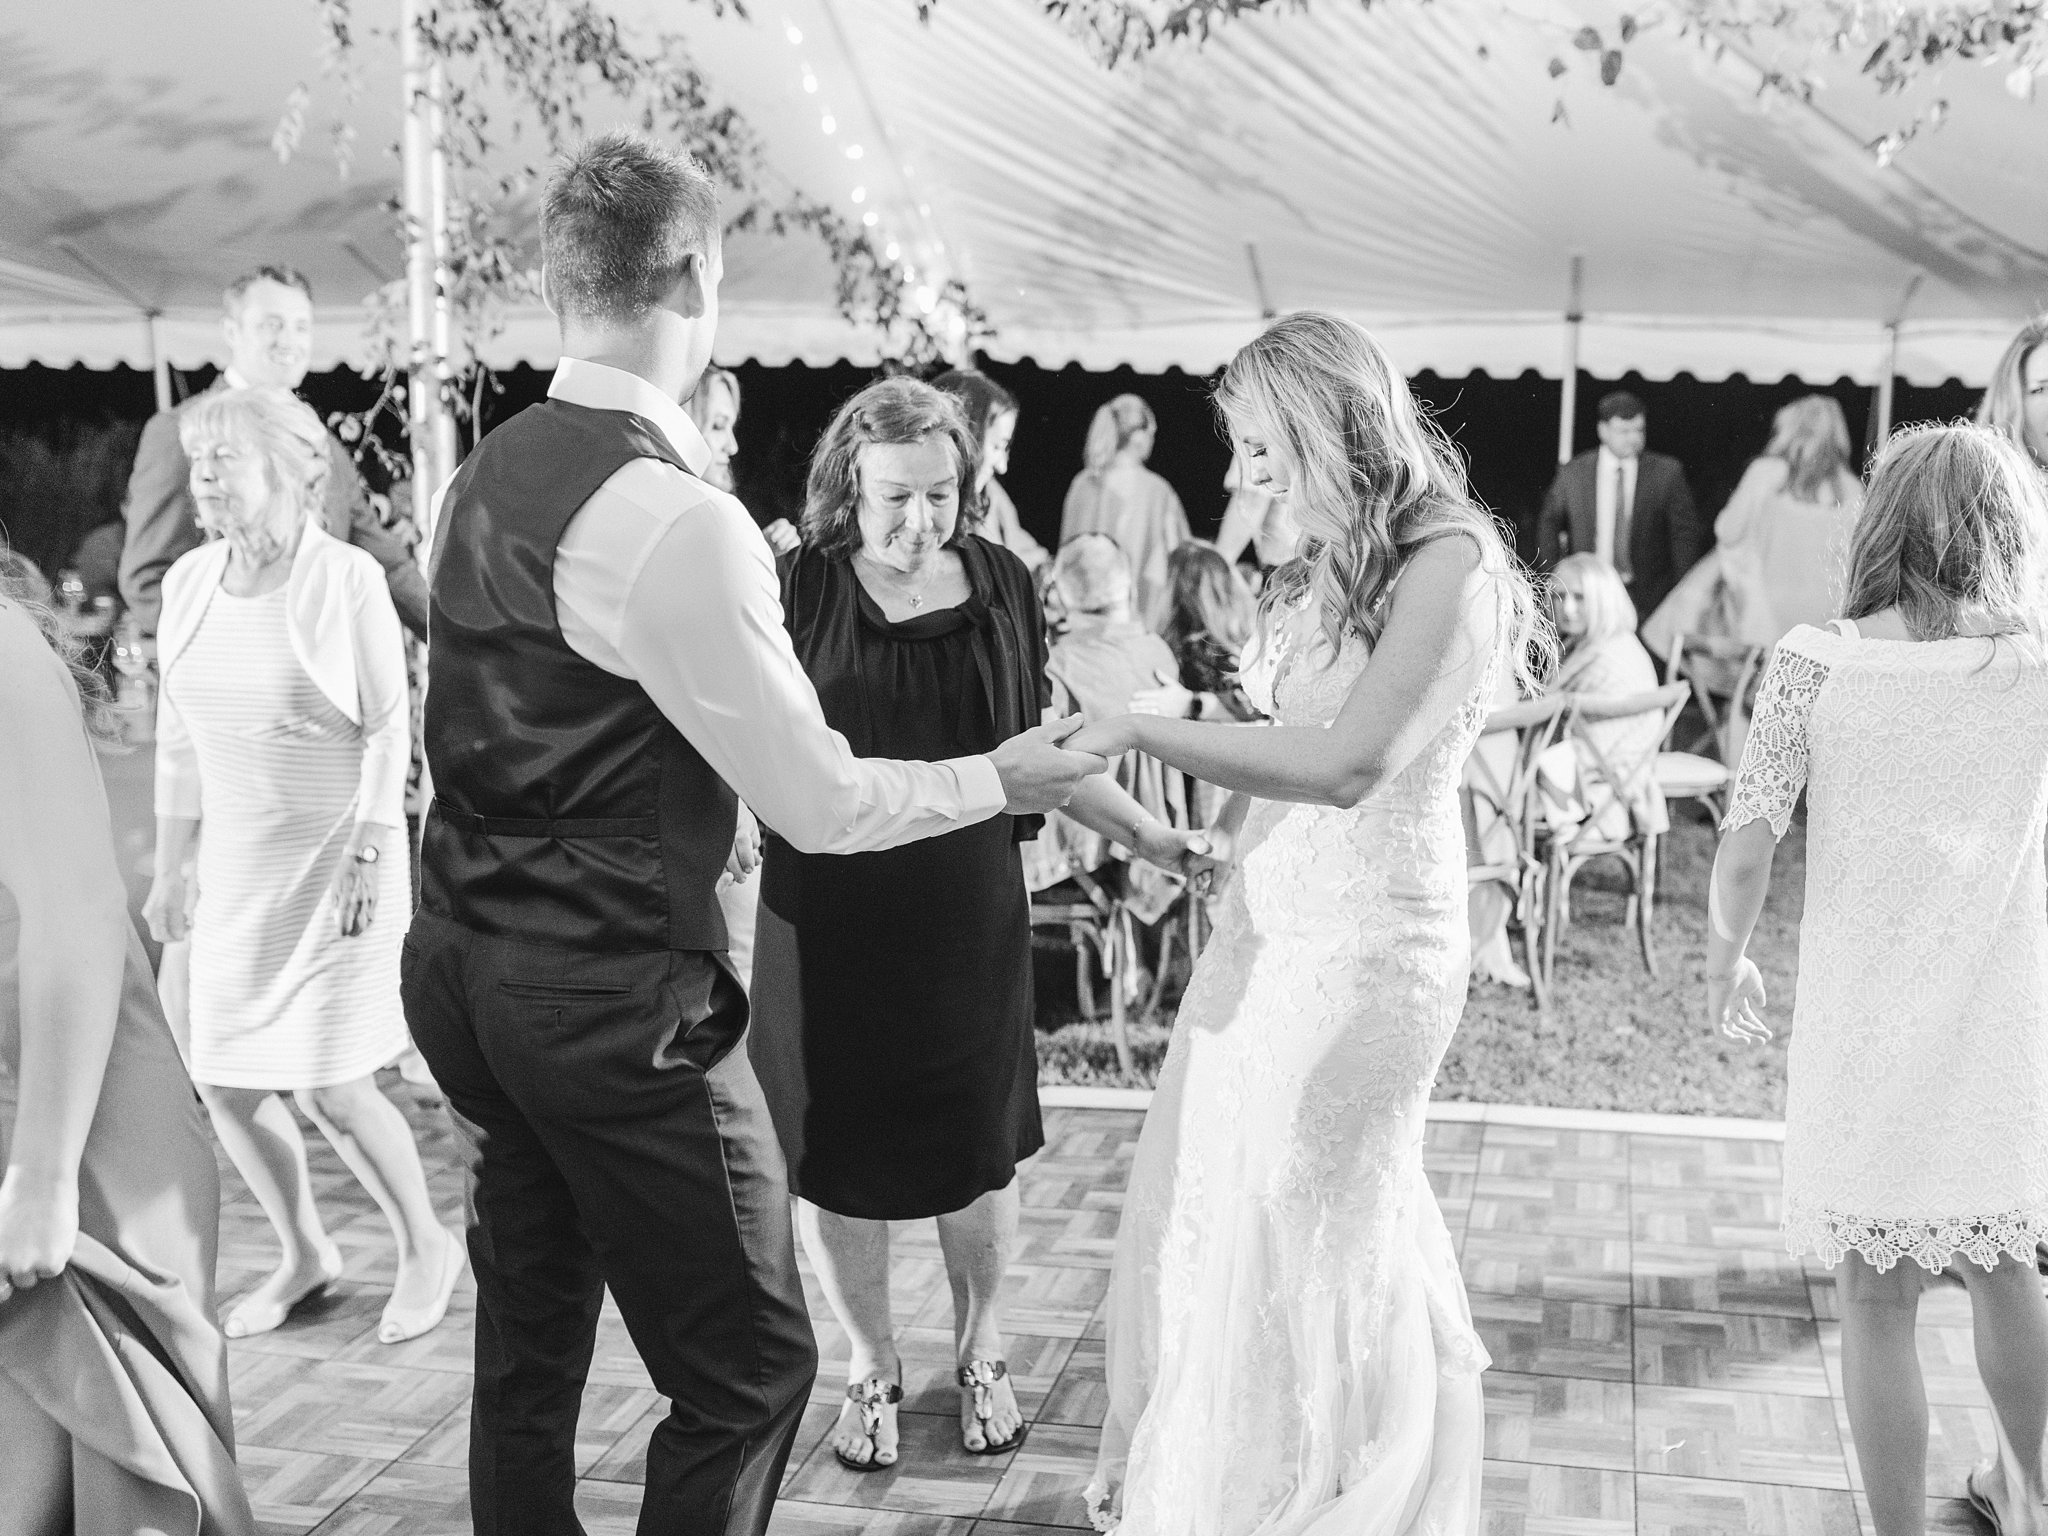 Party dancing, bride, groom, mother of groom, Private Estate Wedding Photos, Amy Pinder Photography